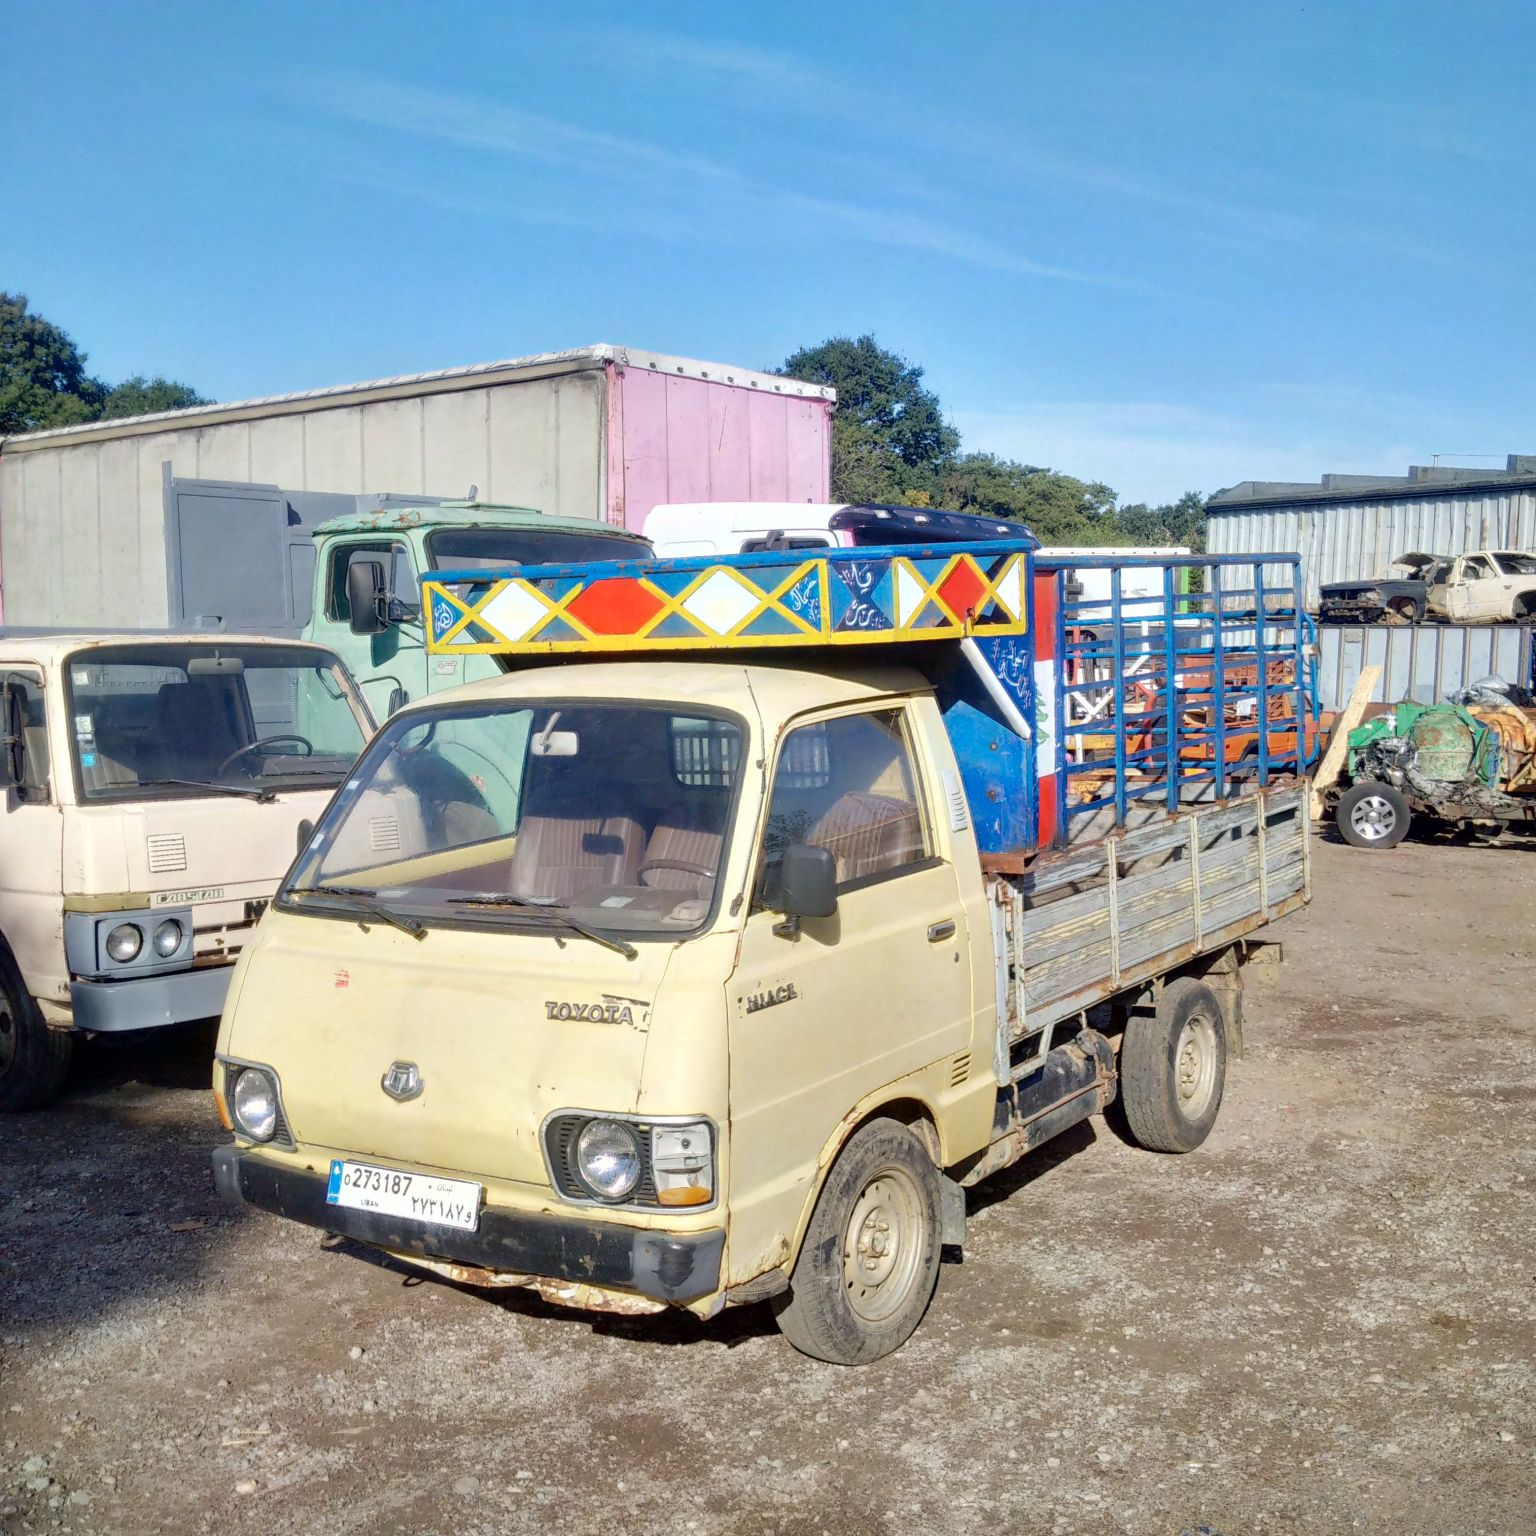 Left hand drive Toyota Hiace 2.2 diesel 2.5 Ton pick up truck. 1 L engine.